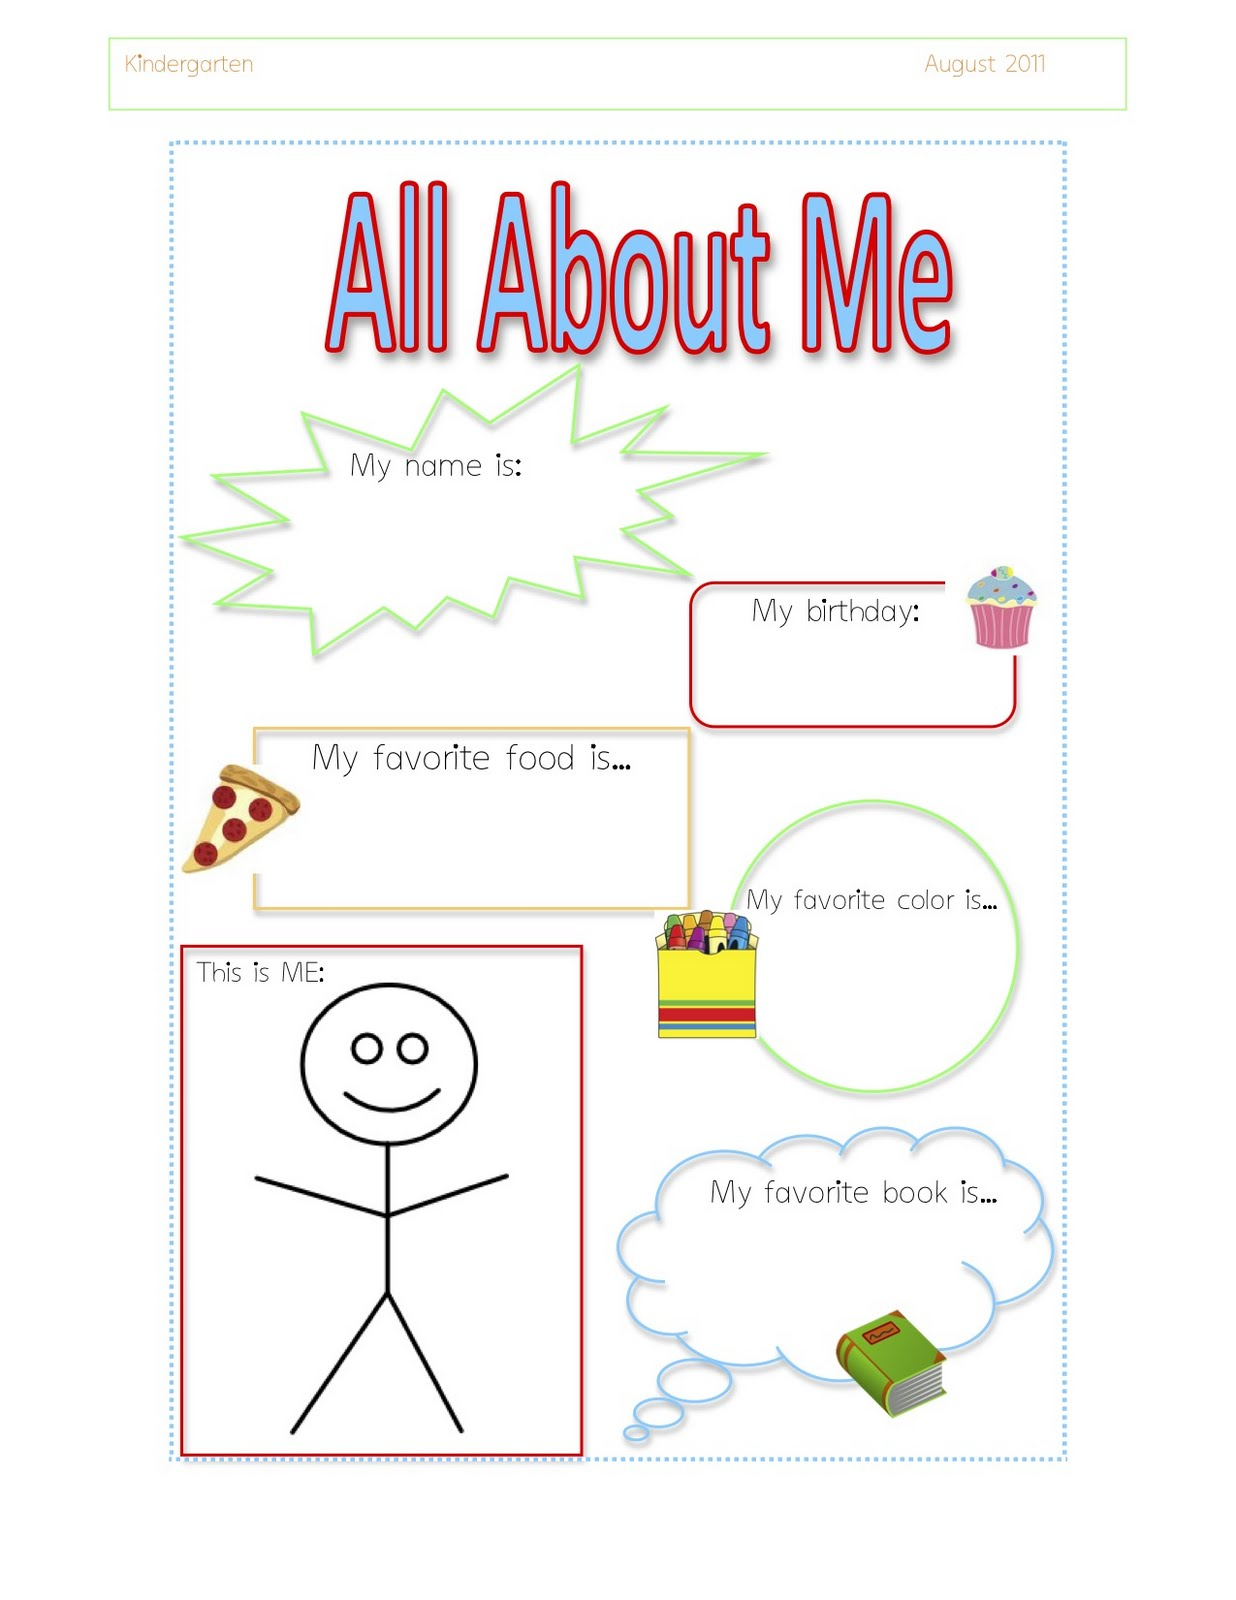 4 Images of About.me Preschool Printable